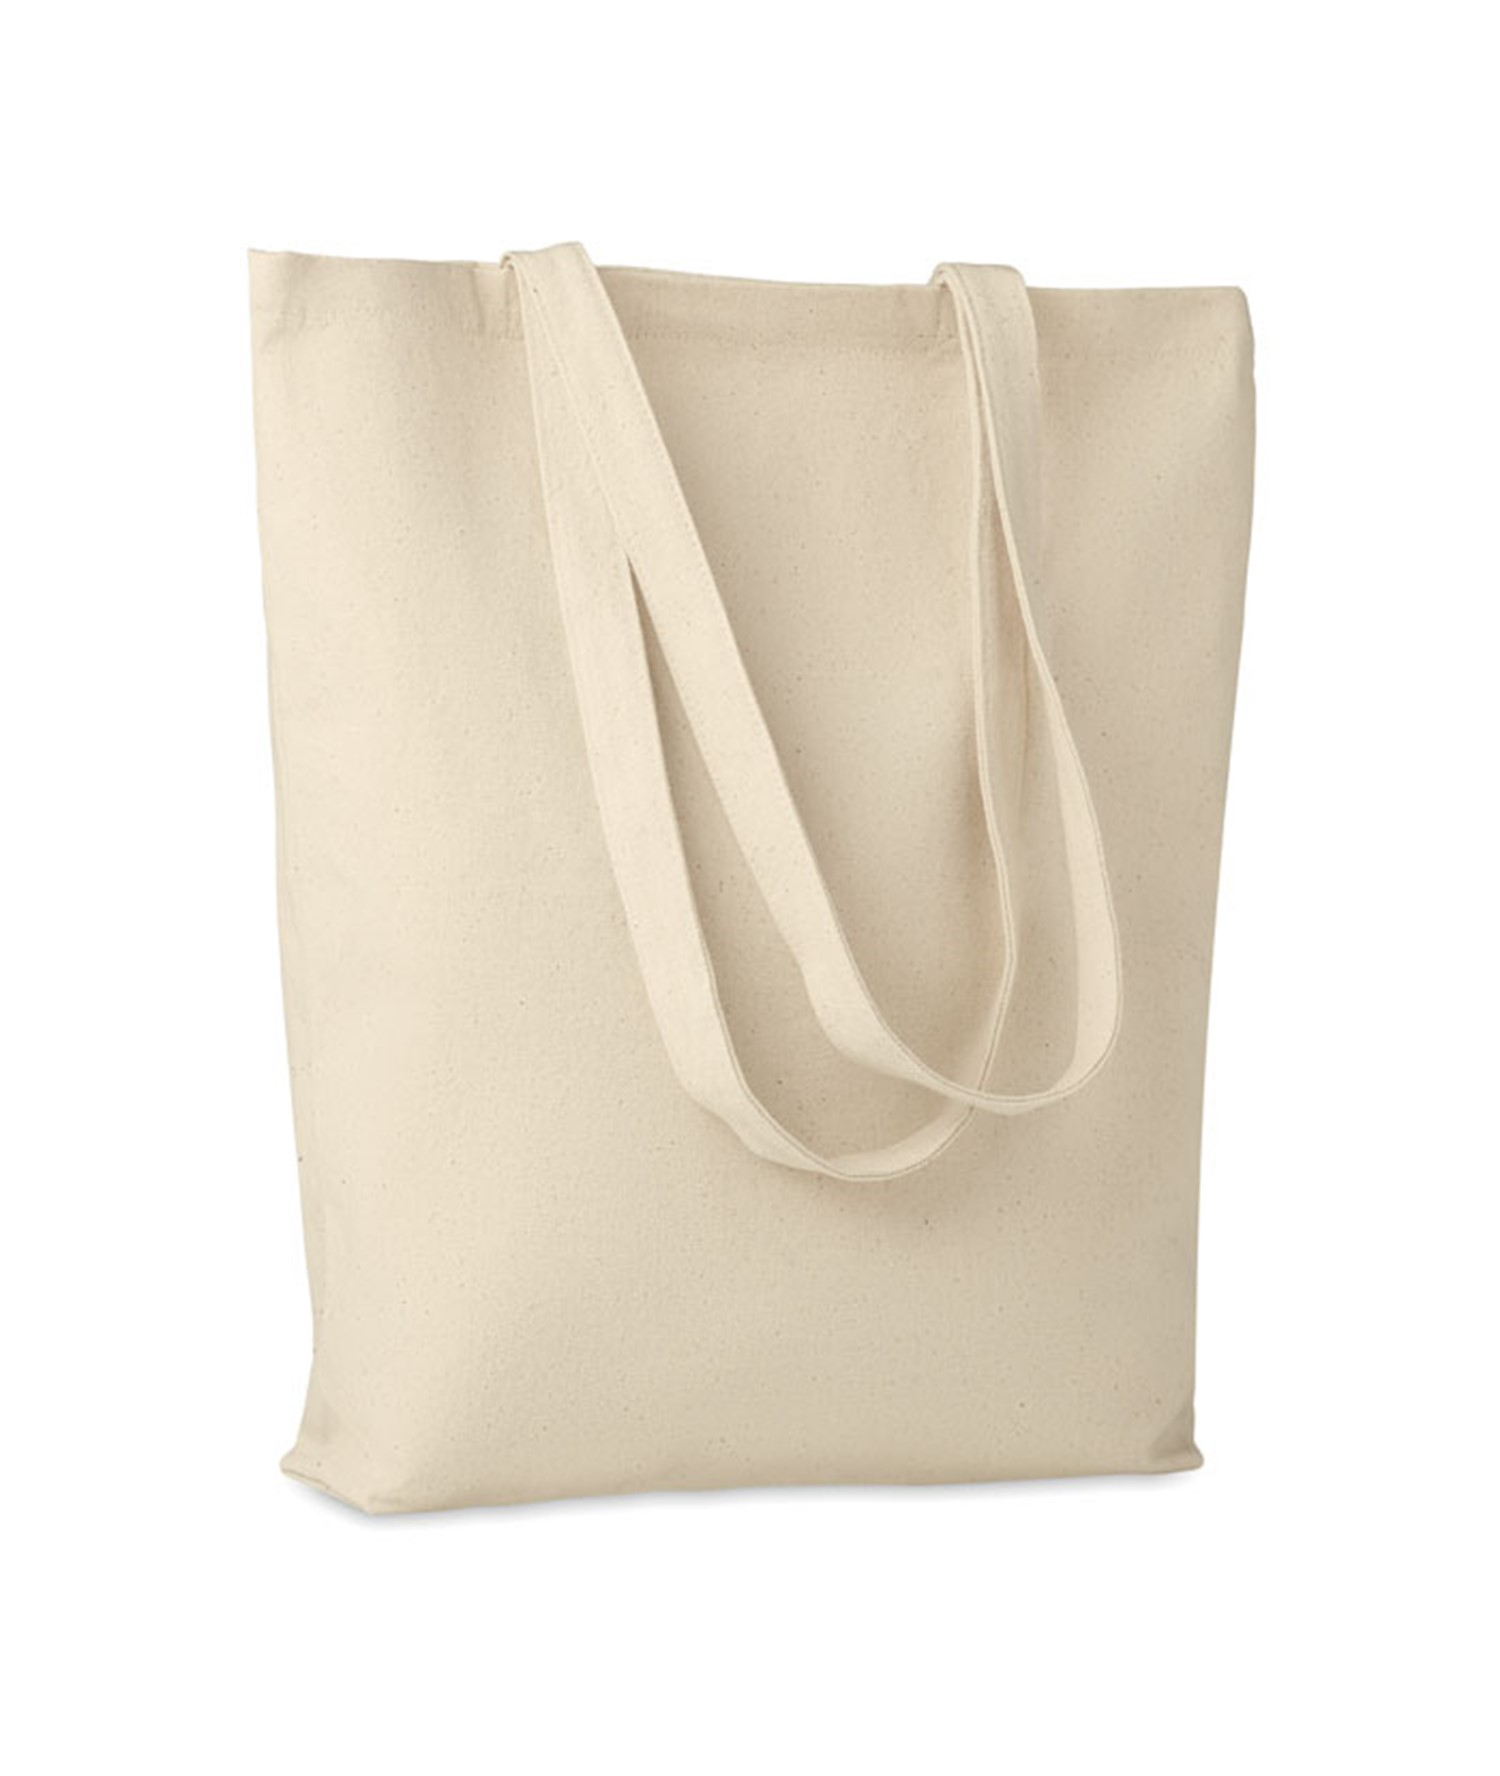 RASSA - CANVAS SHOPPING BAG 270 GR/M²